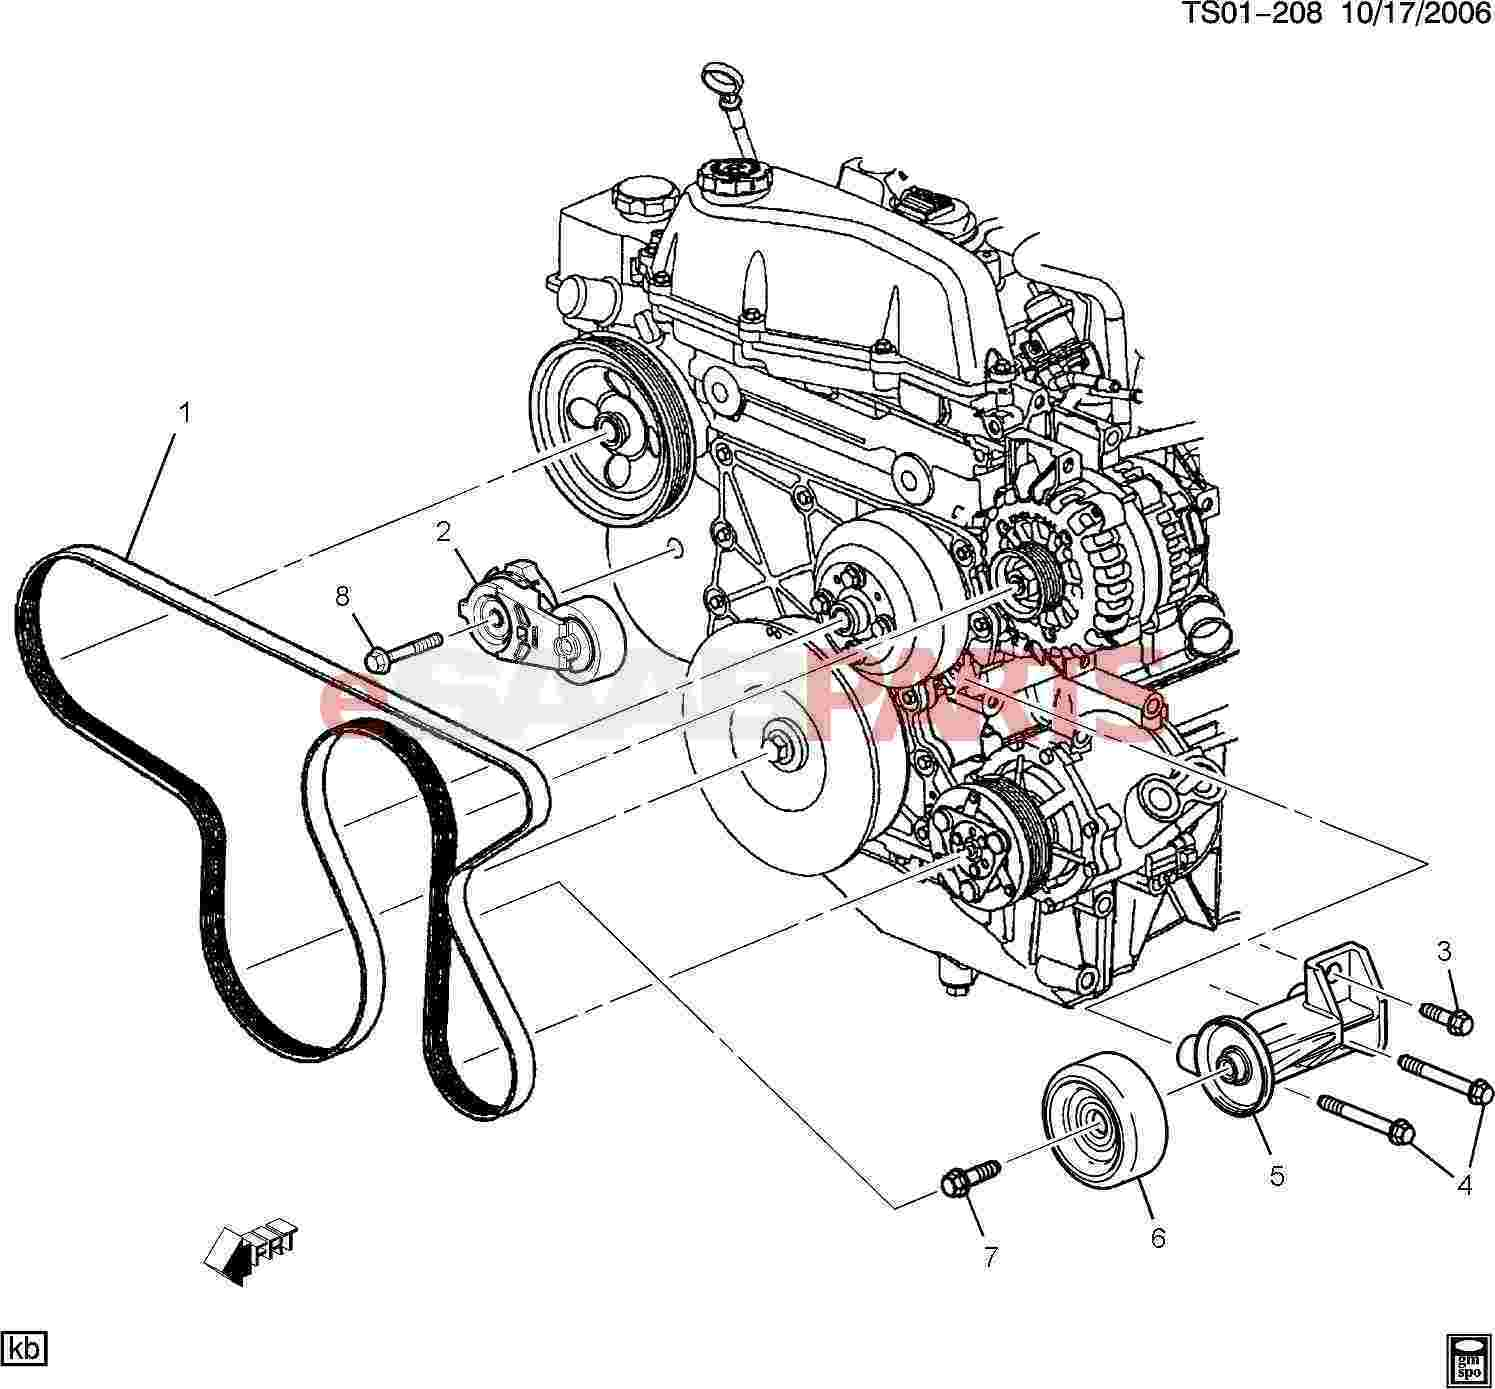 hight resolution of 2007 chevy colorado engine diagram wiring library belt routing 2006 chevy colorado on malibu 3 5l v6 engine diagram